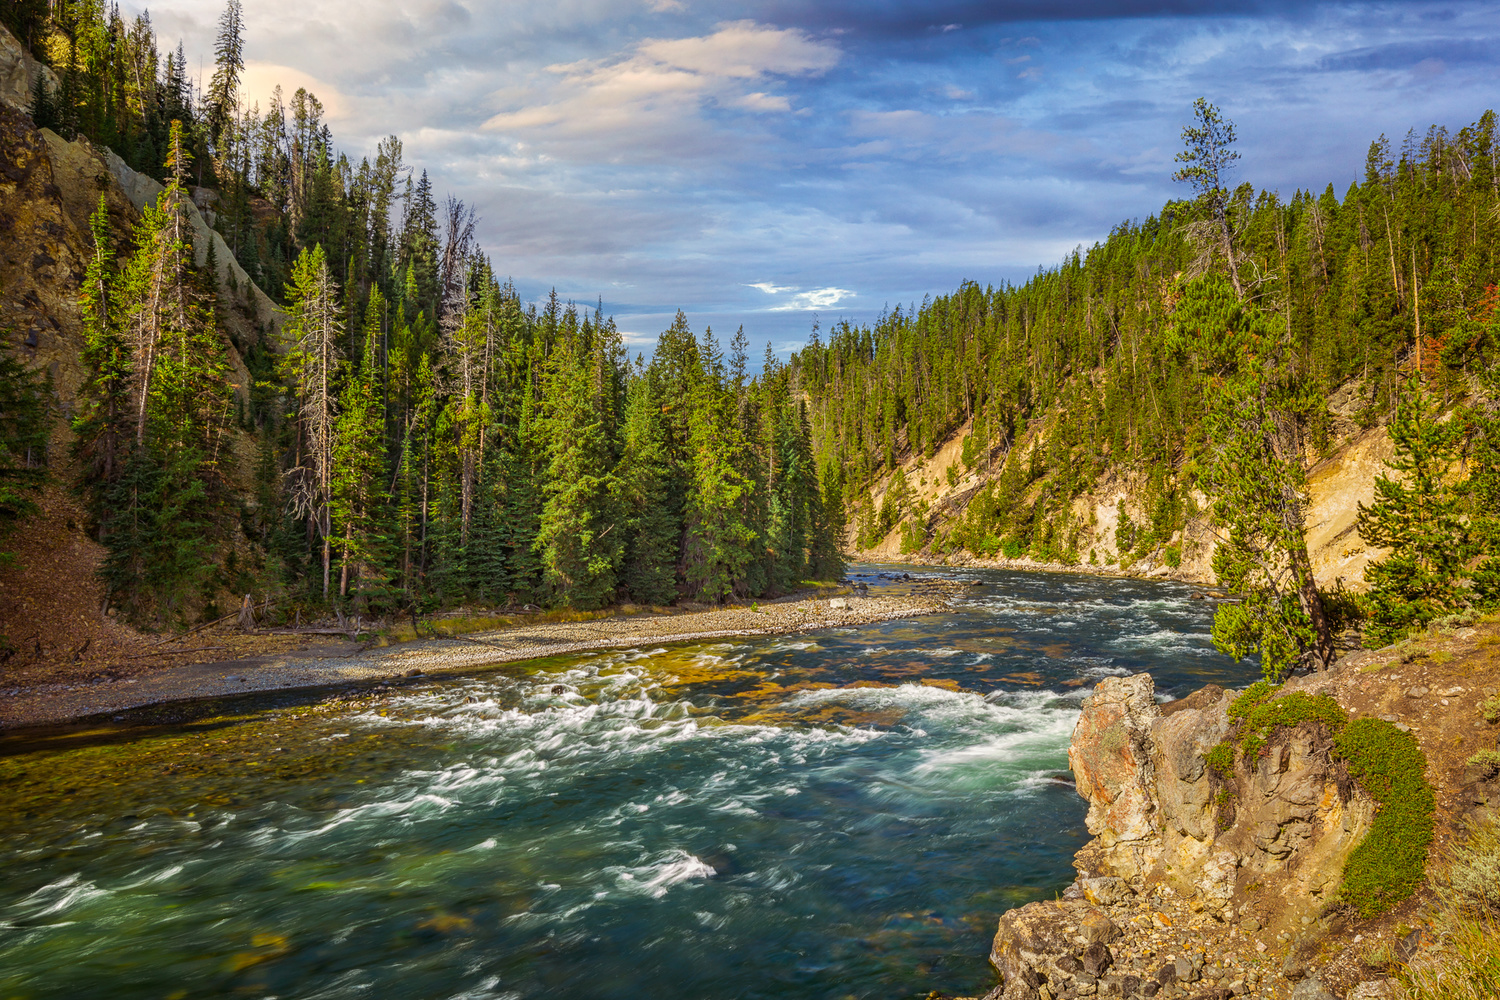 sunrise shot looking upstream above the lower falls in yellowstone national park